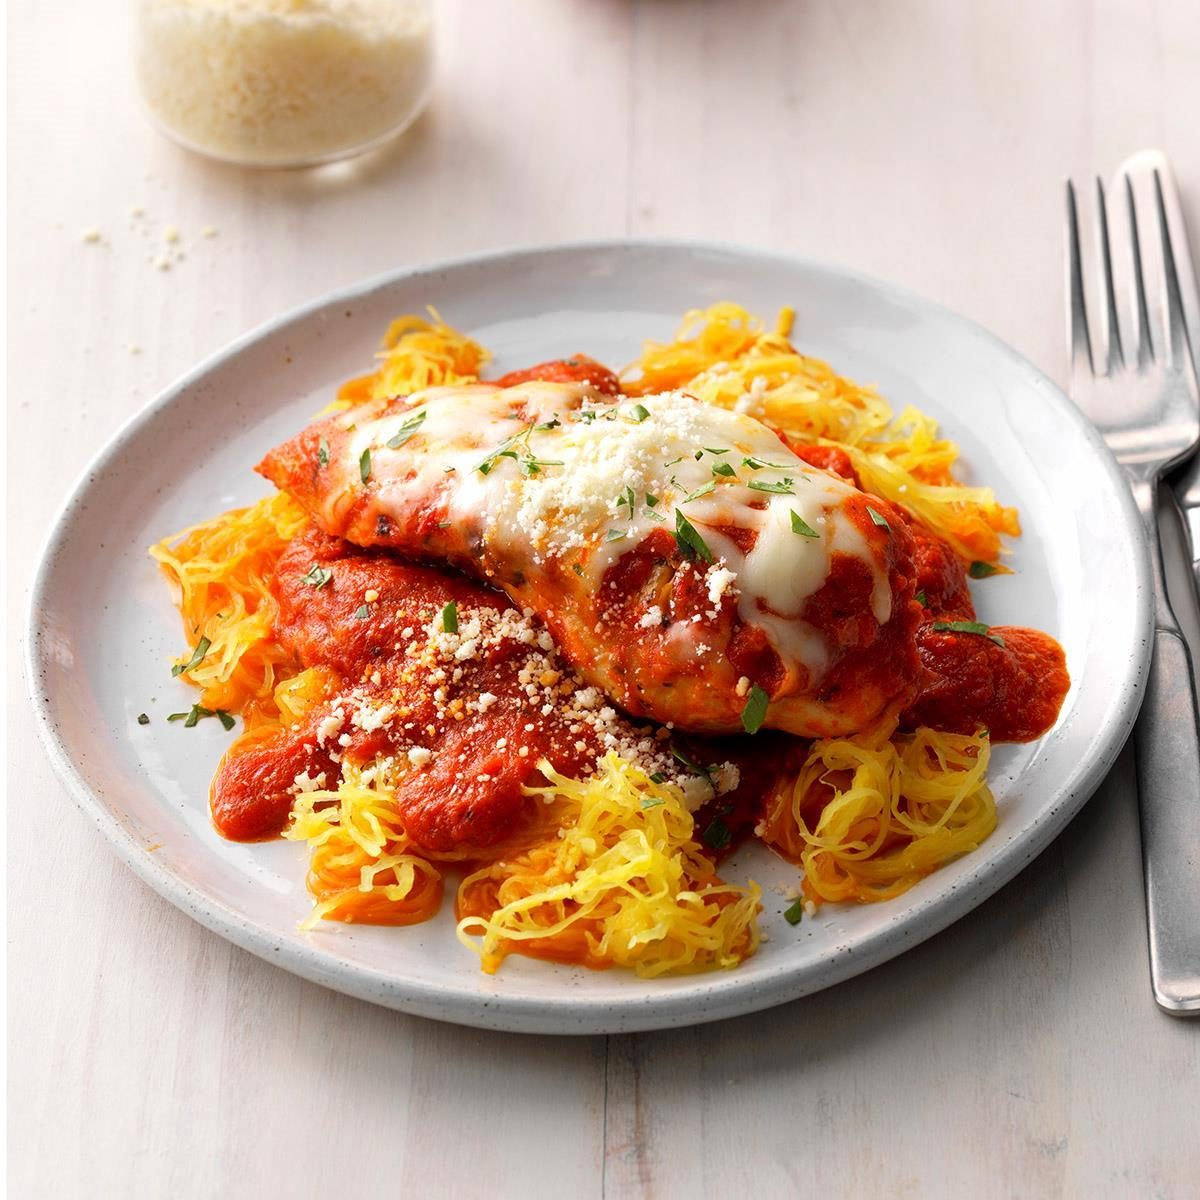 17 Spaghetti Squash Recipes for When You're Craving Pasta But Eating Low Carb